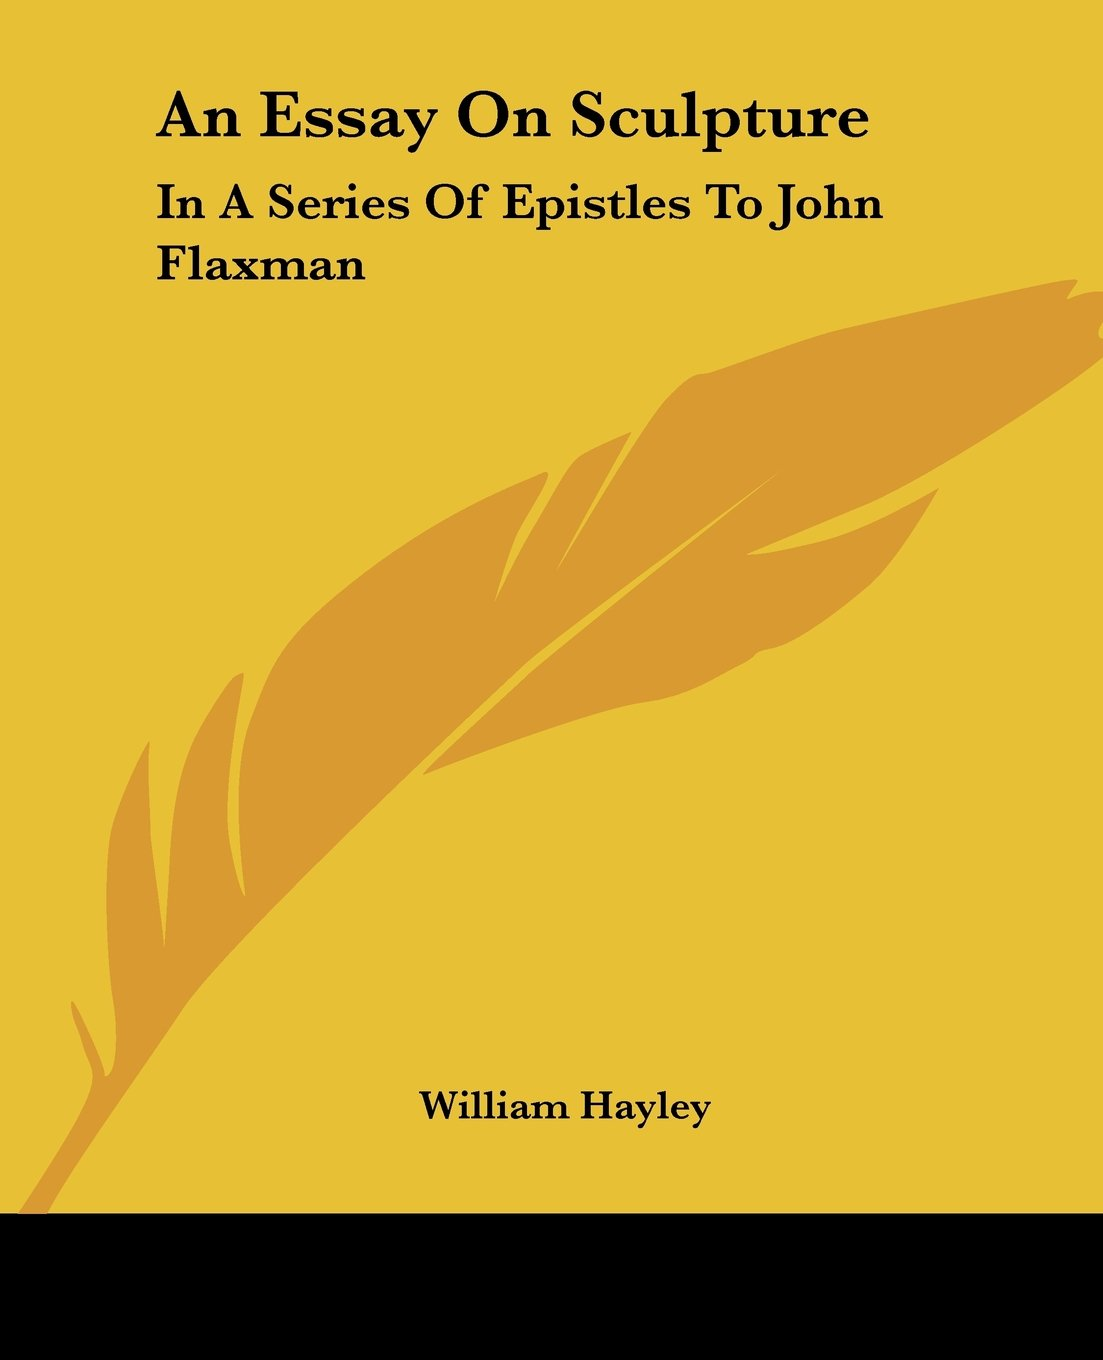 john flaxman com an essay on sculpture in a series of epistles to john flaxman